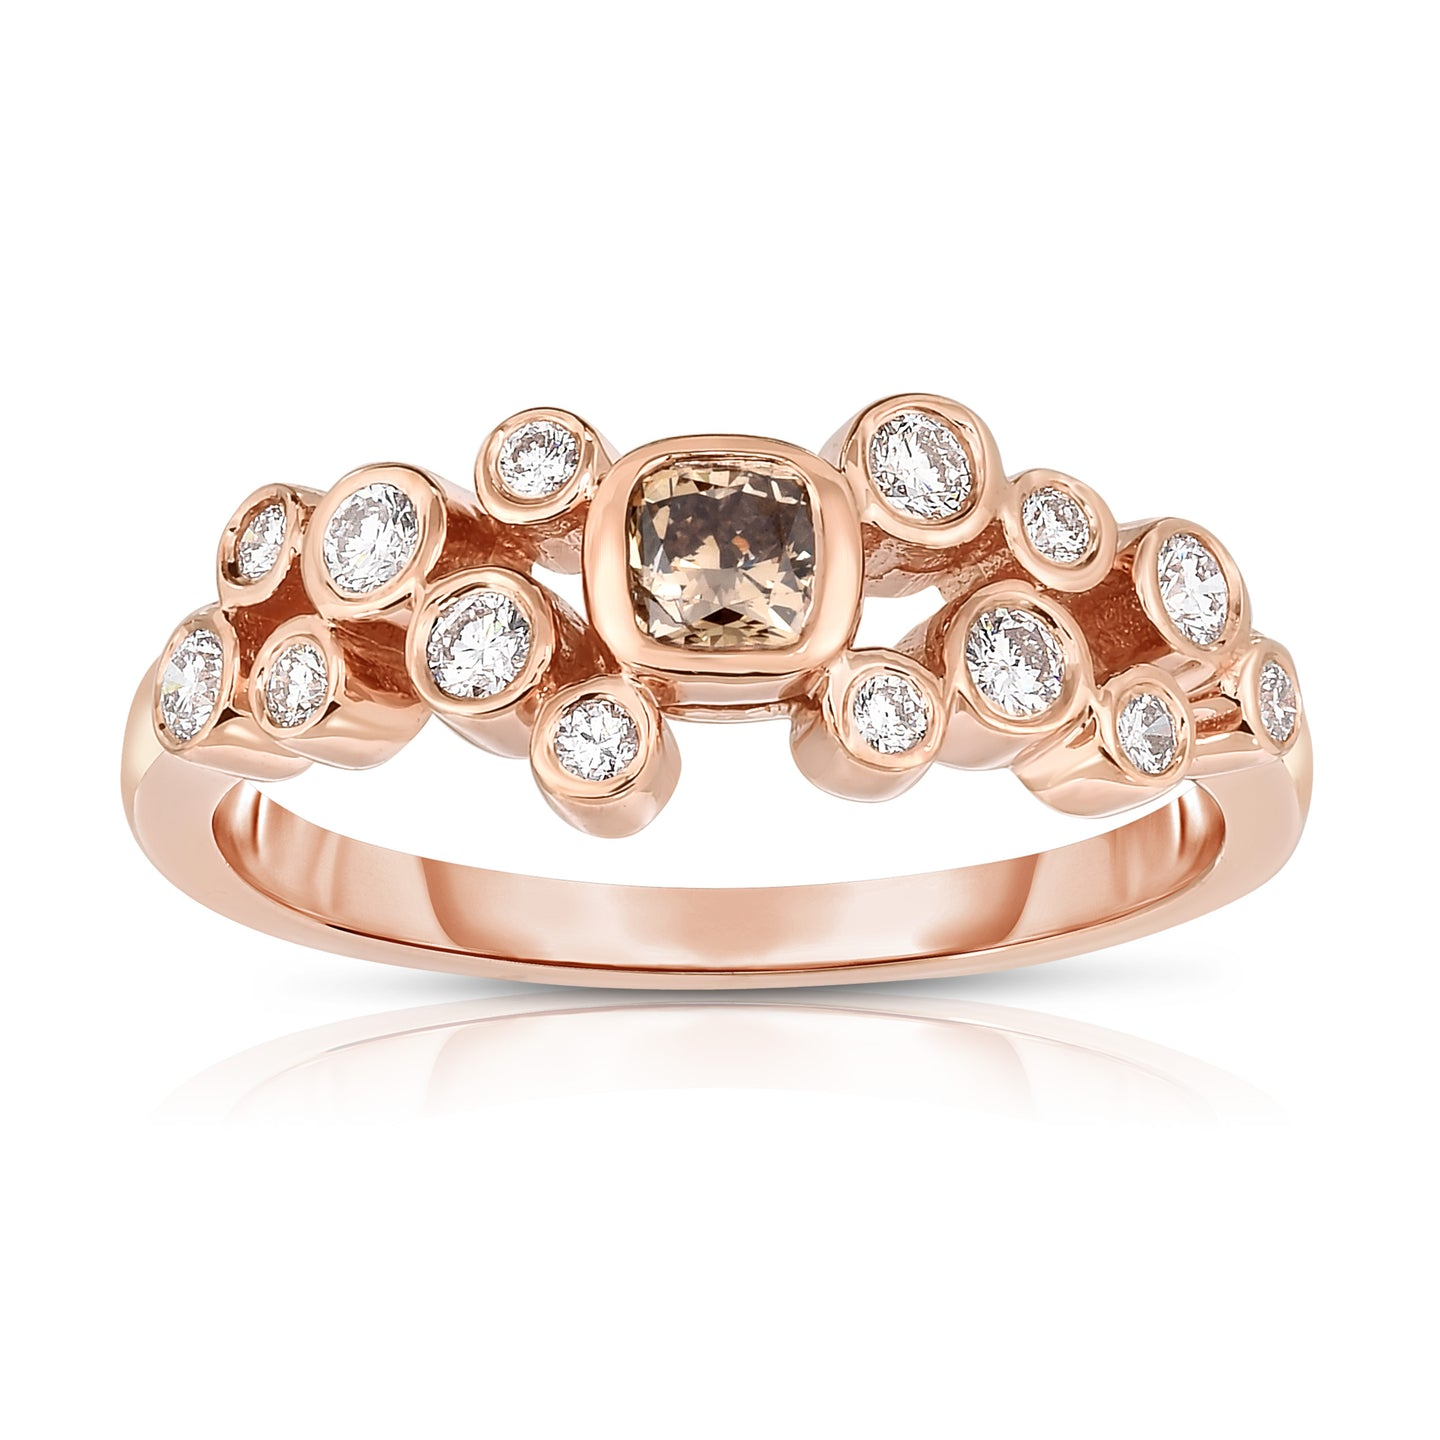 Sabel Collection 14K Rose and White Gold Fancy Mocha and White Diamond Bezel Set Cluster Ring